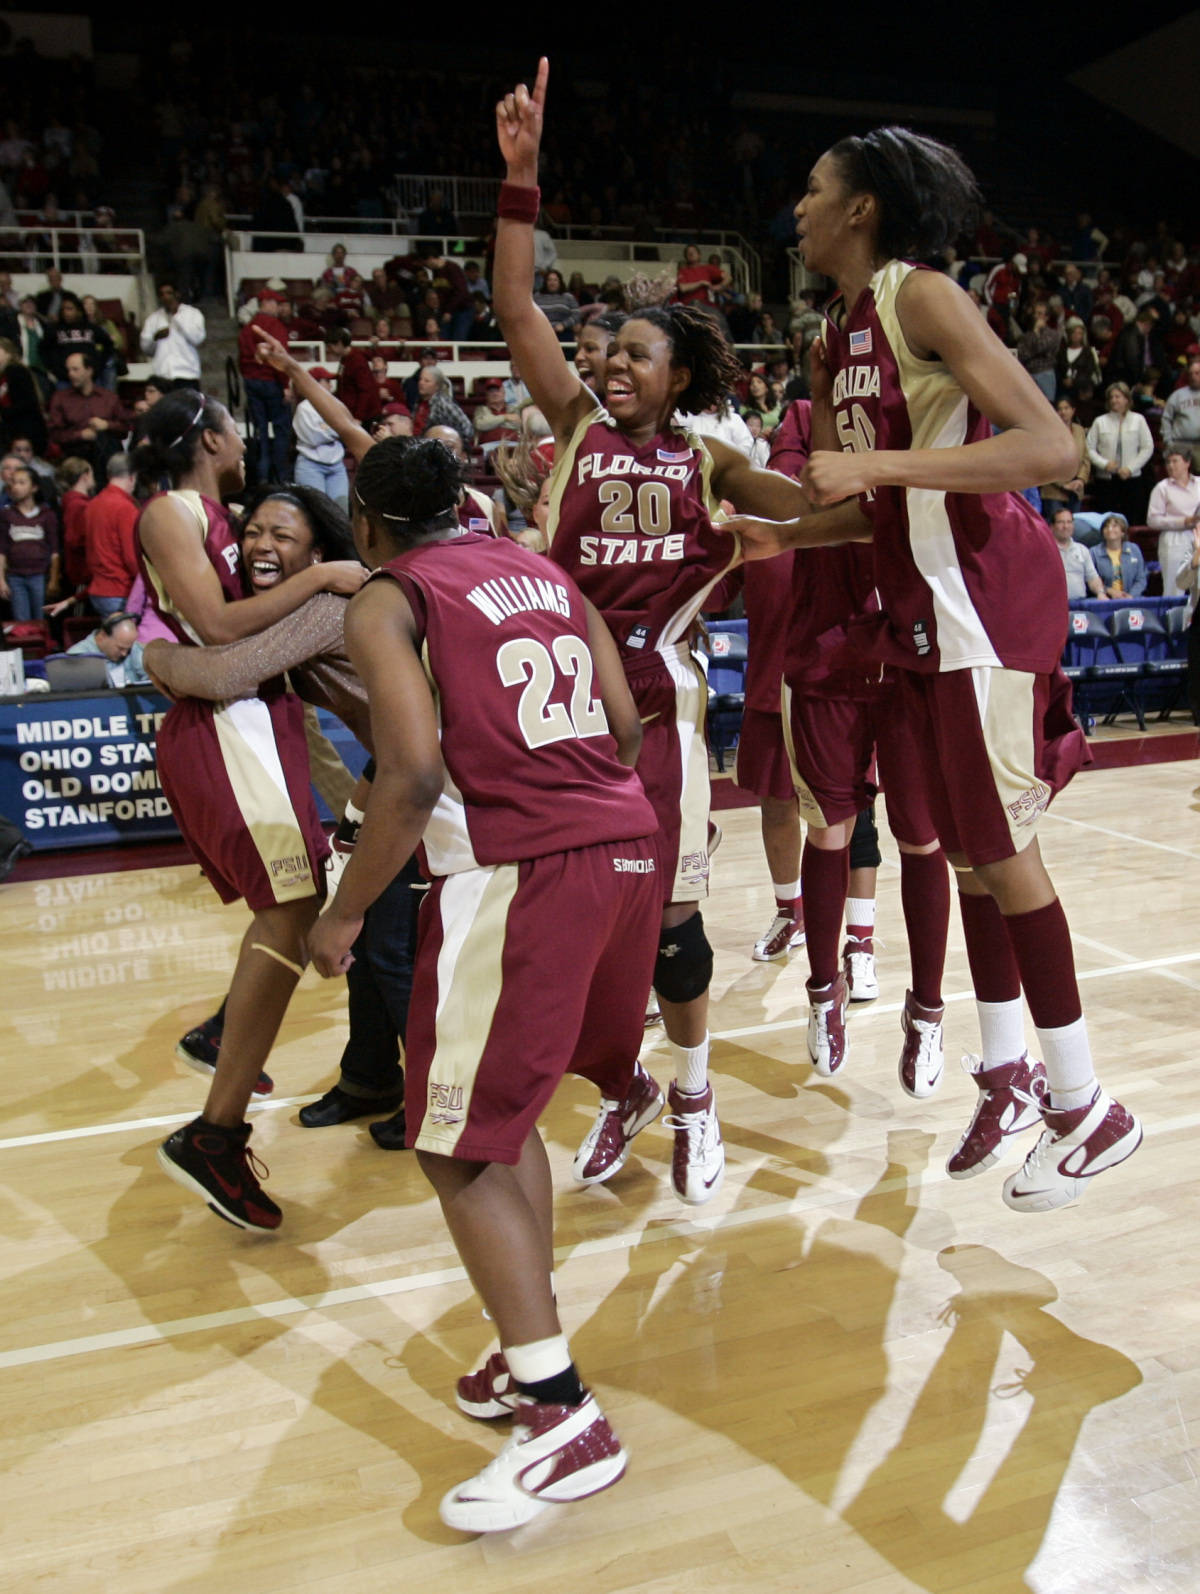 Florida State players celebrate after they upset Stanford 68-61 in their second-round game in the NCAA women's basketball tournament in Stanford, Calif., Monday, March 19, 2007. (AP Photo/Paul Sakuma)